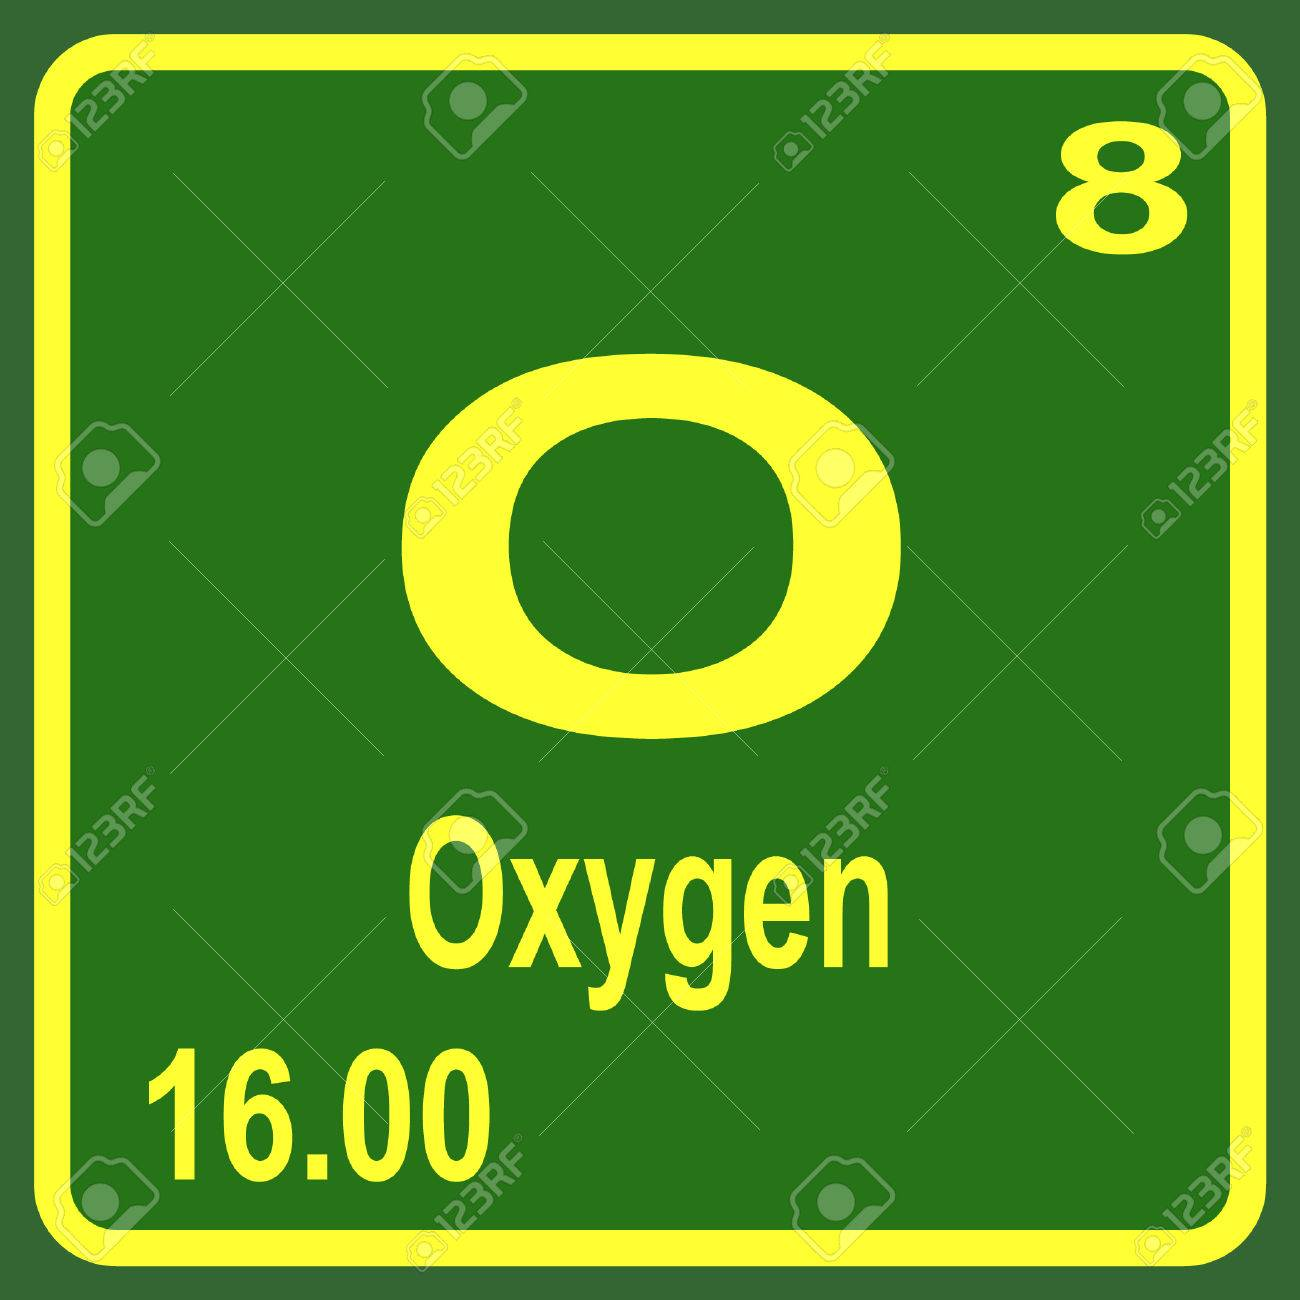 Periodic table of elements oxygen royalty free cliparts vectors periodic table of elements oxygen stock vector 53900235 urtaz Images